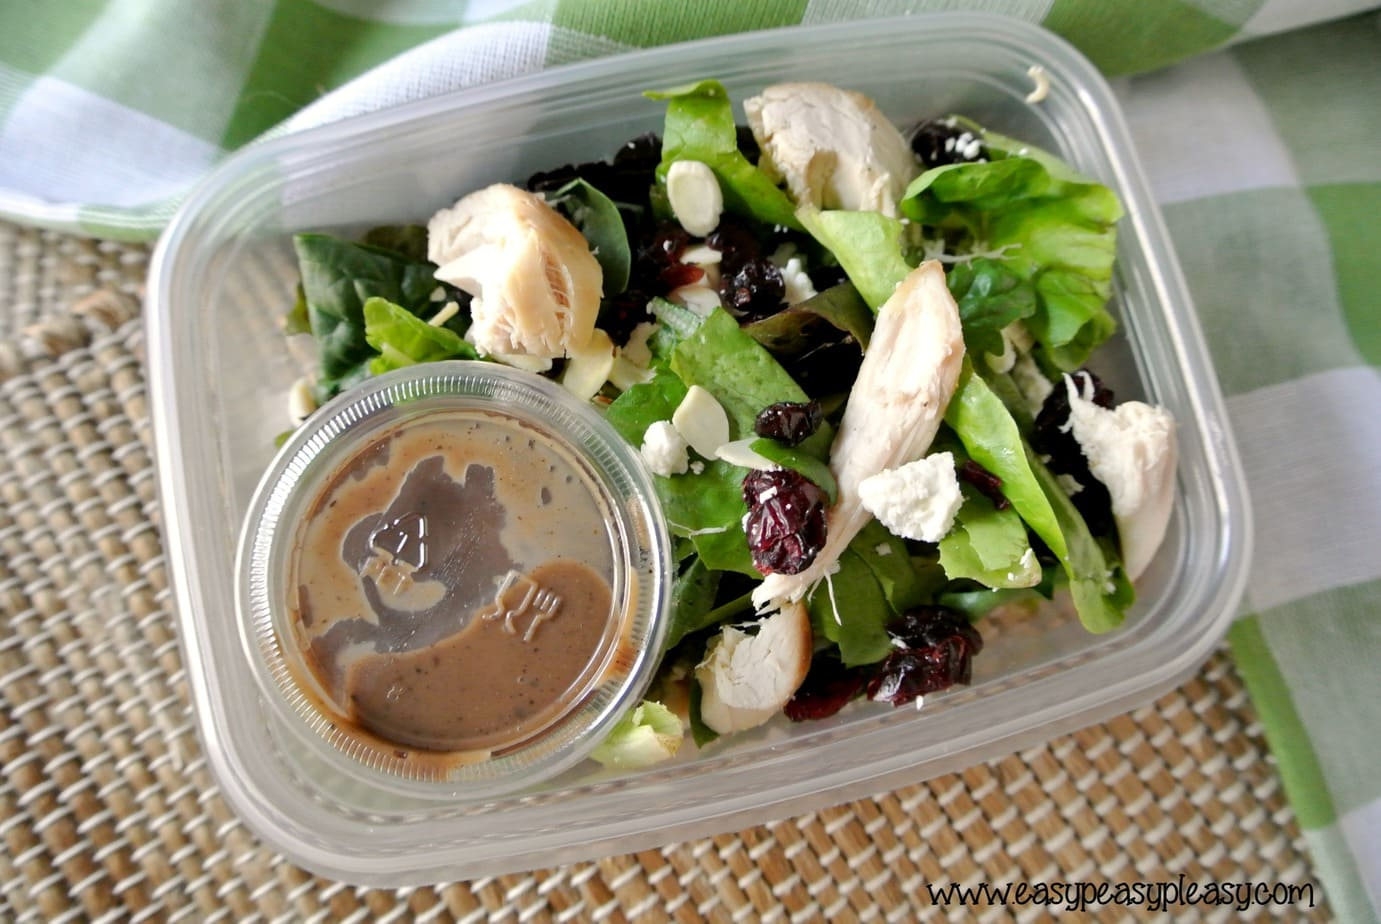 From salad to container to cooler to trash. Check out these easy To Go salads that require no cleanup and are perfect for the cooler.